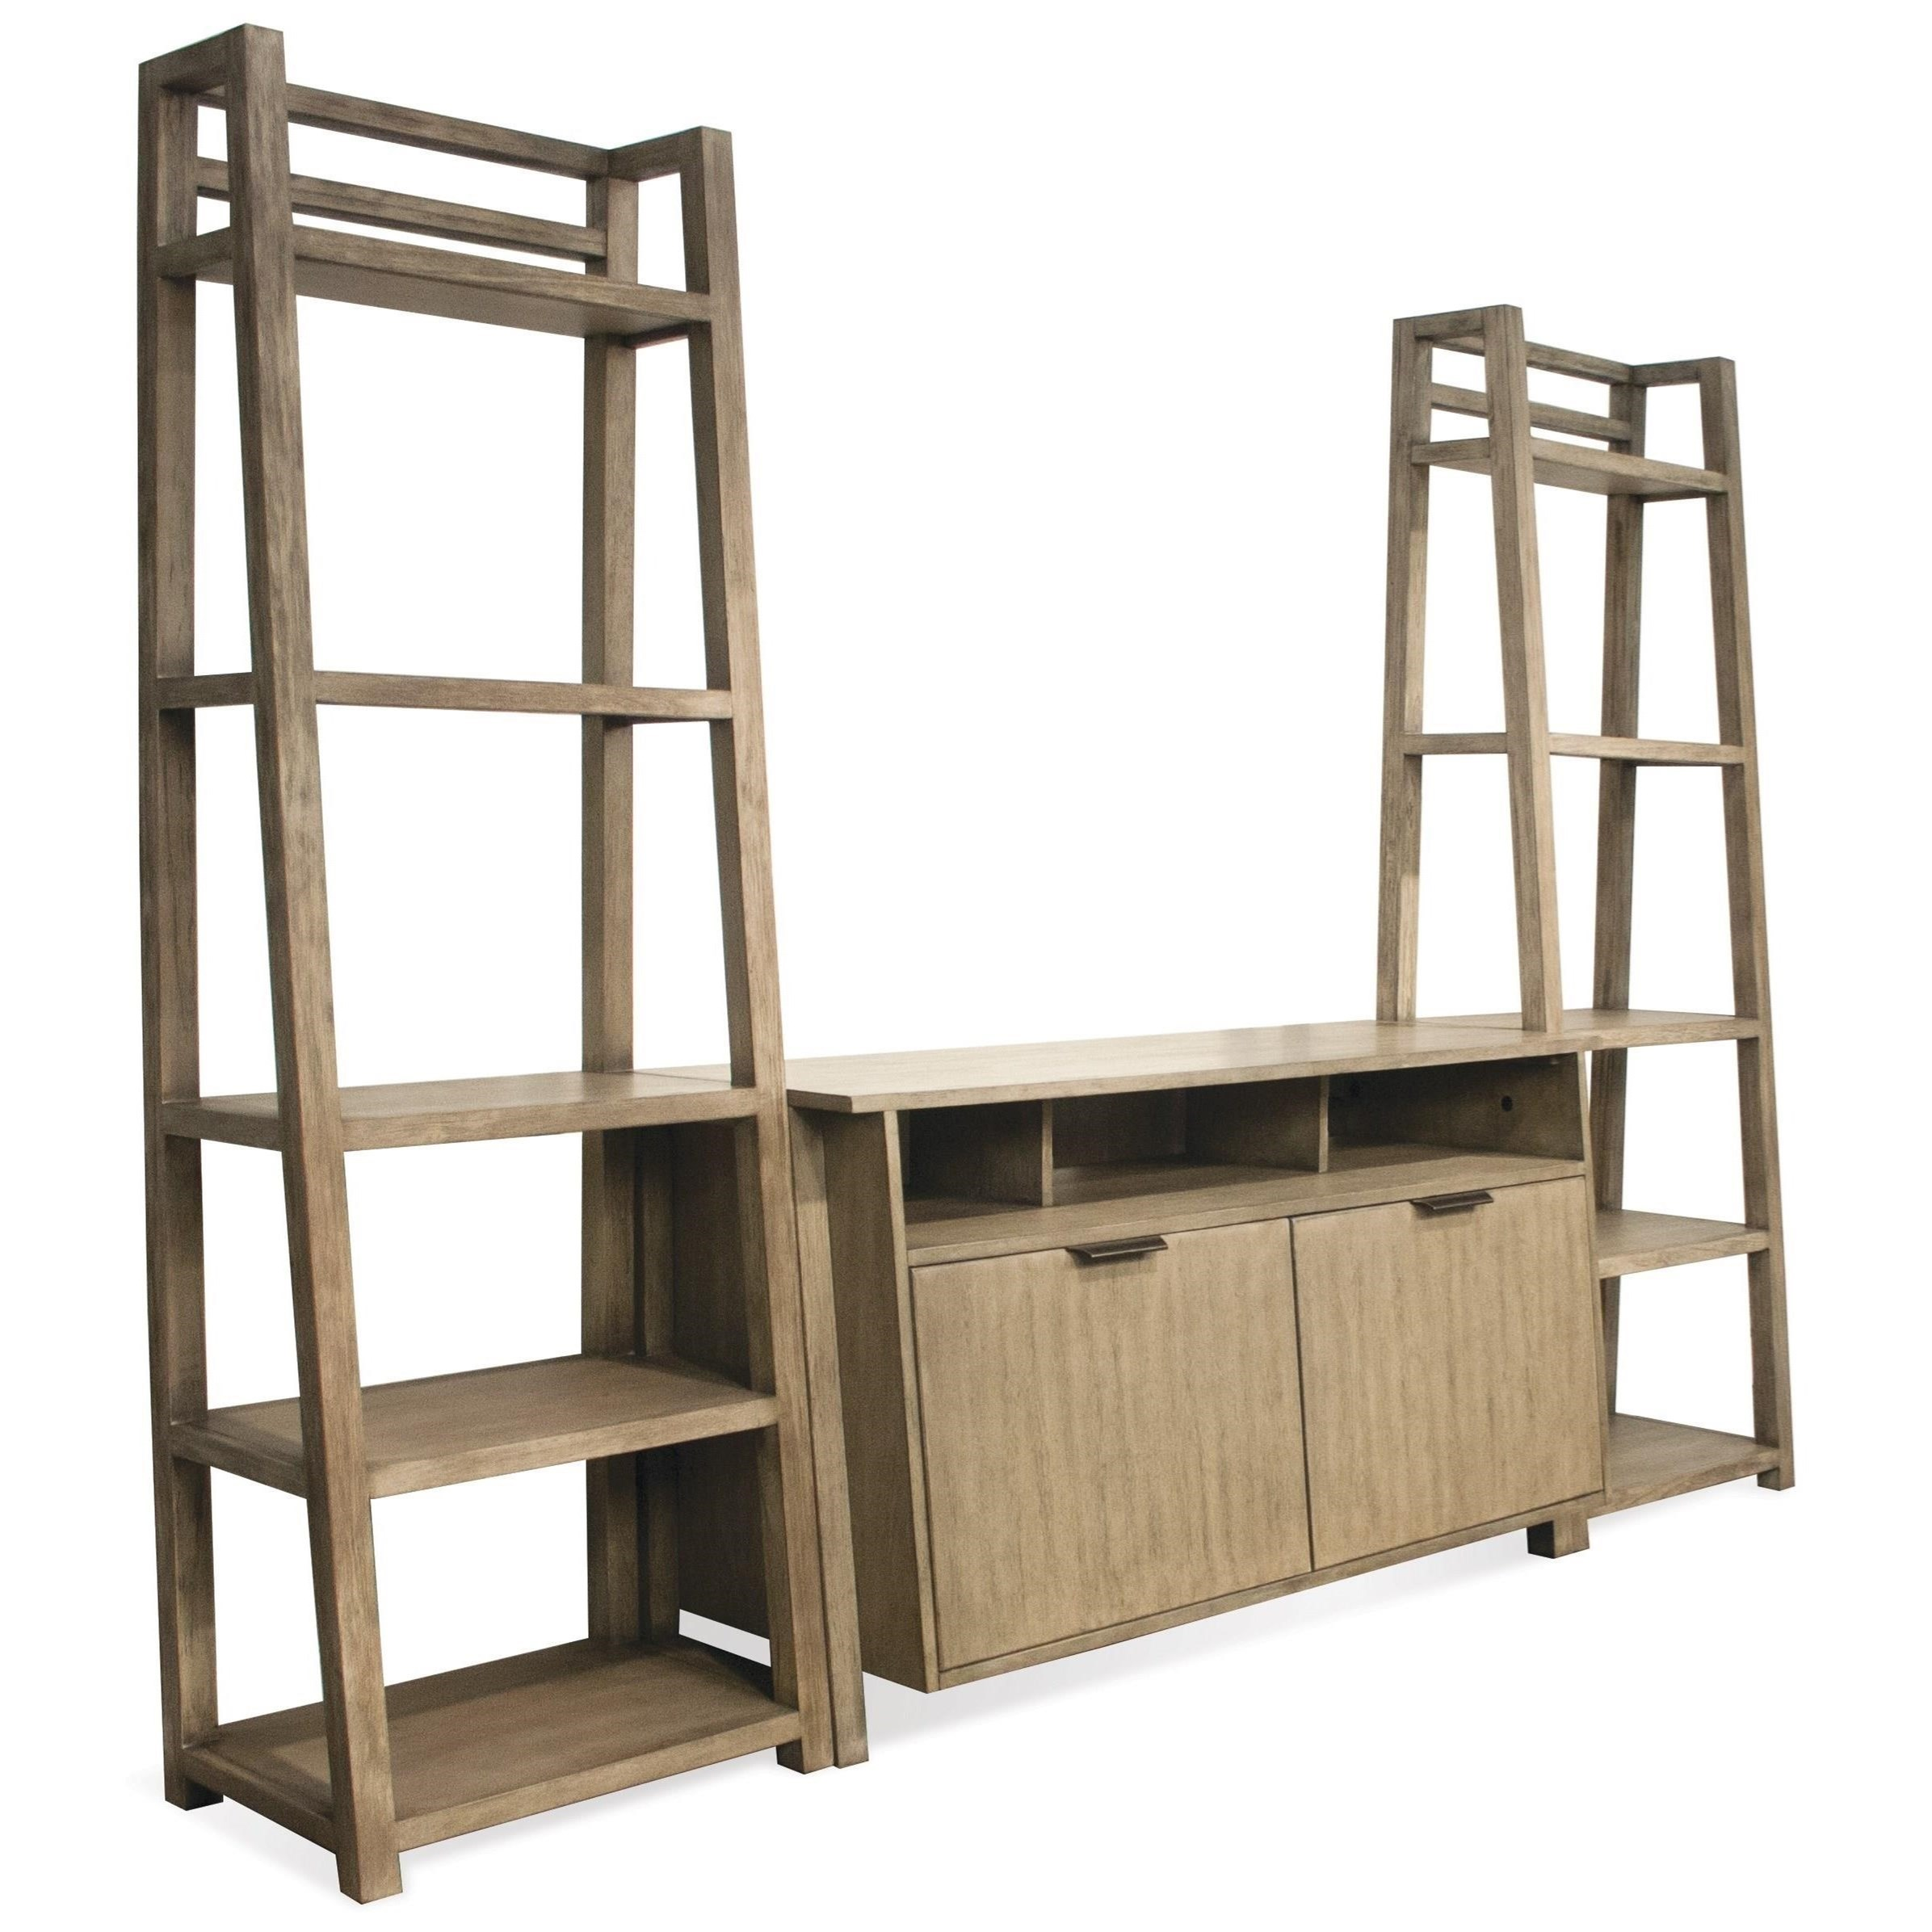 Riverside Furniture Perspectives 28137 Entertainment Console